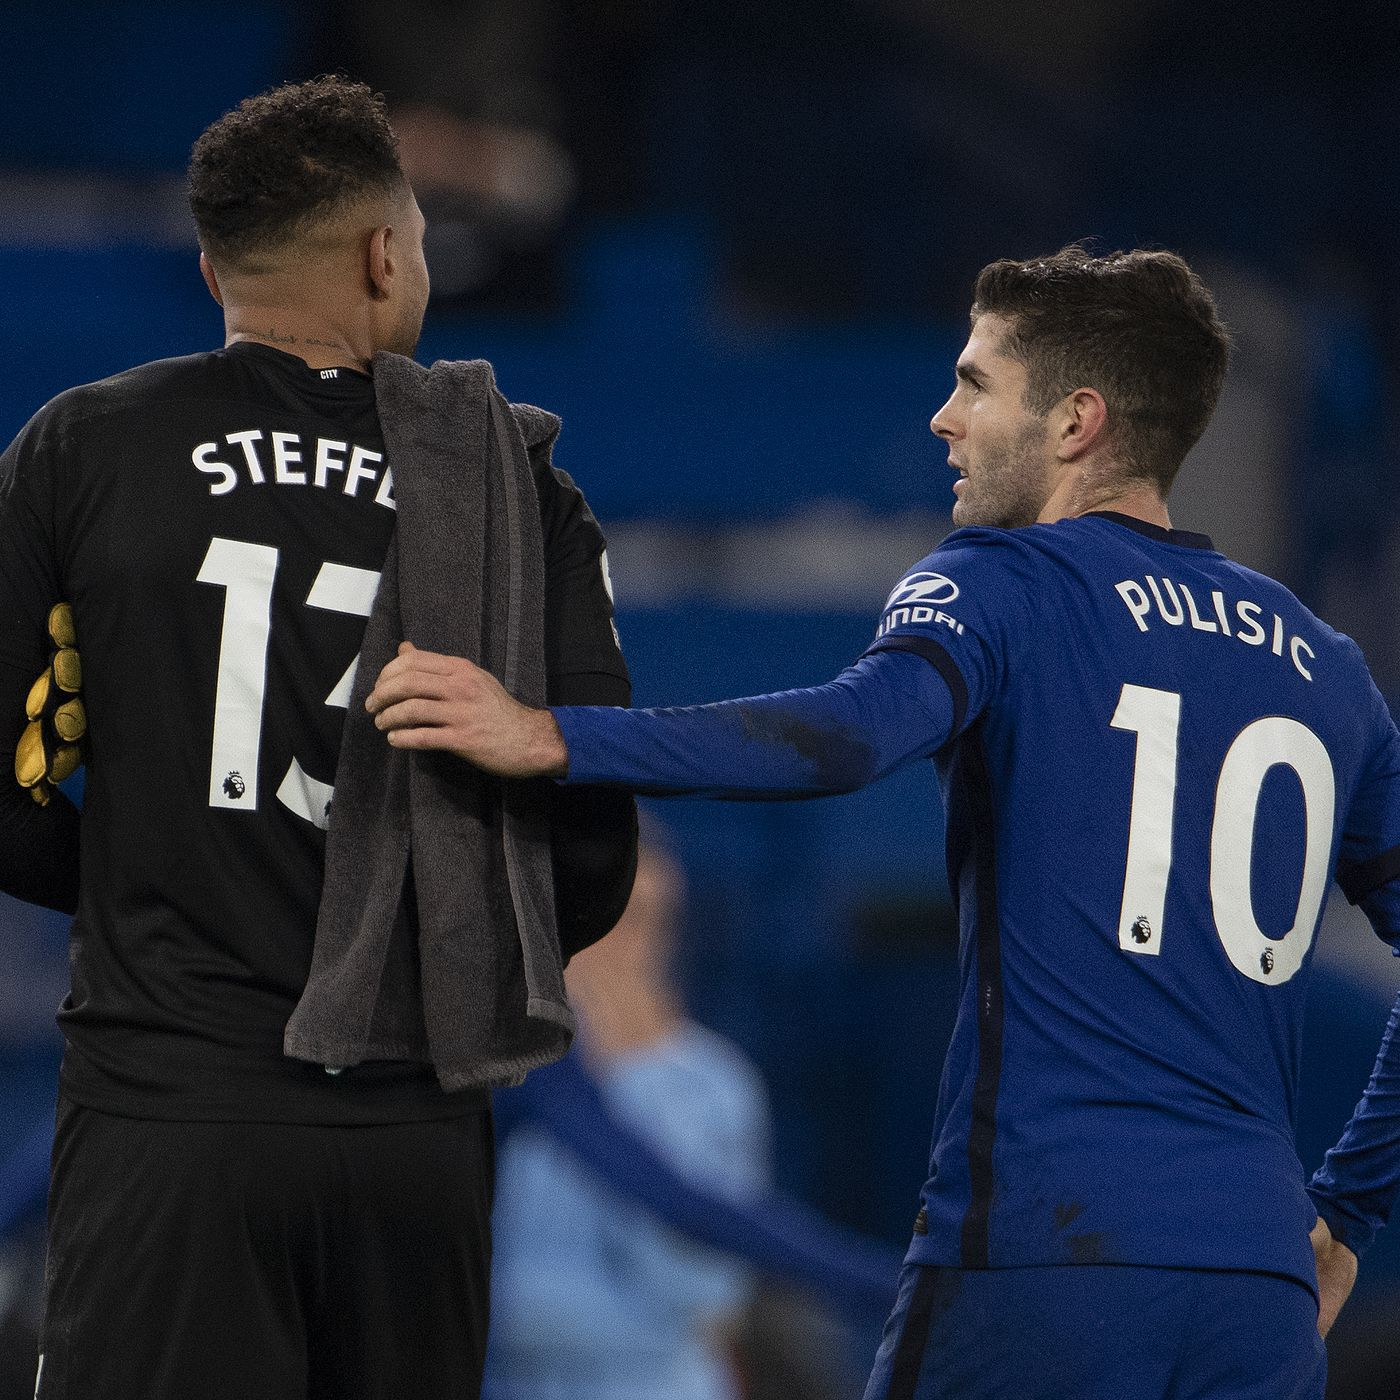 Manchester City Vs Chelsea 2021 Champions League Final Time Tv Schedule And Lineups Stars And Stripes Fc